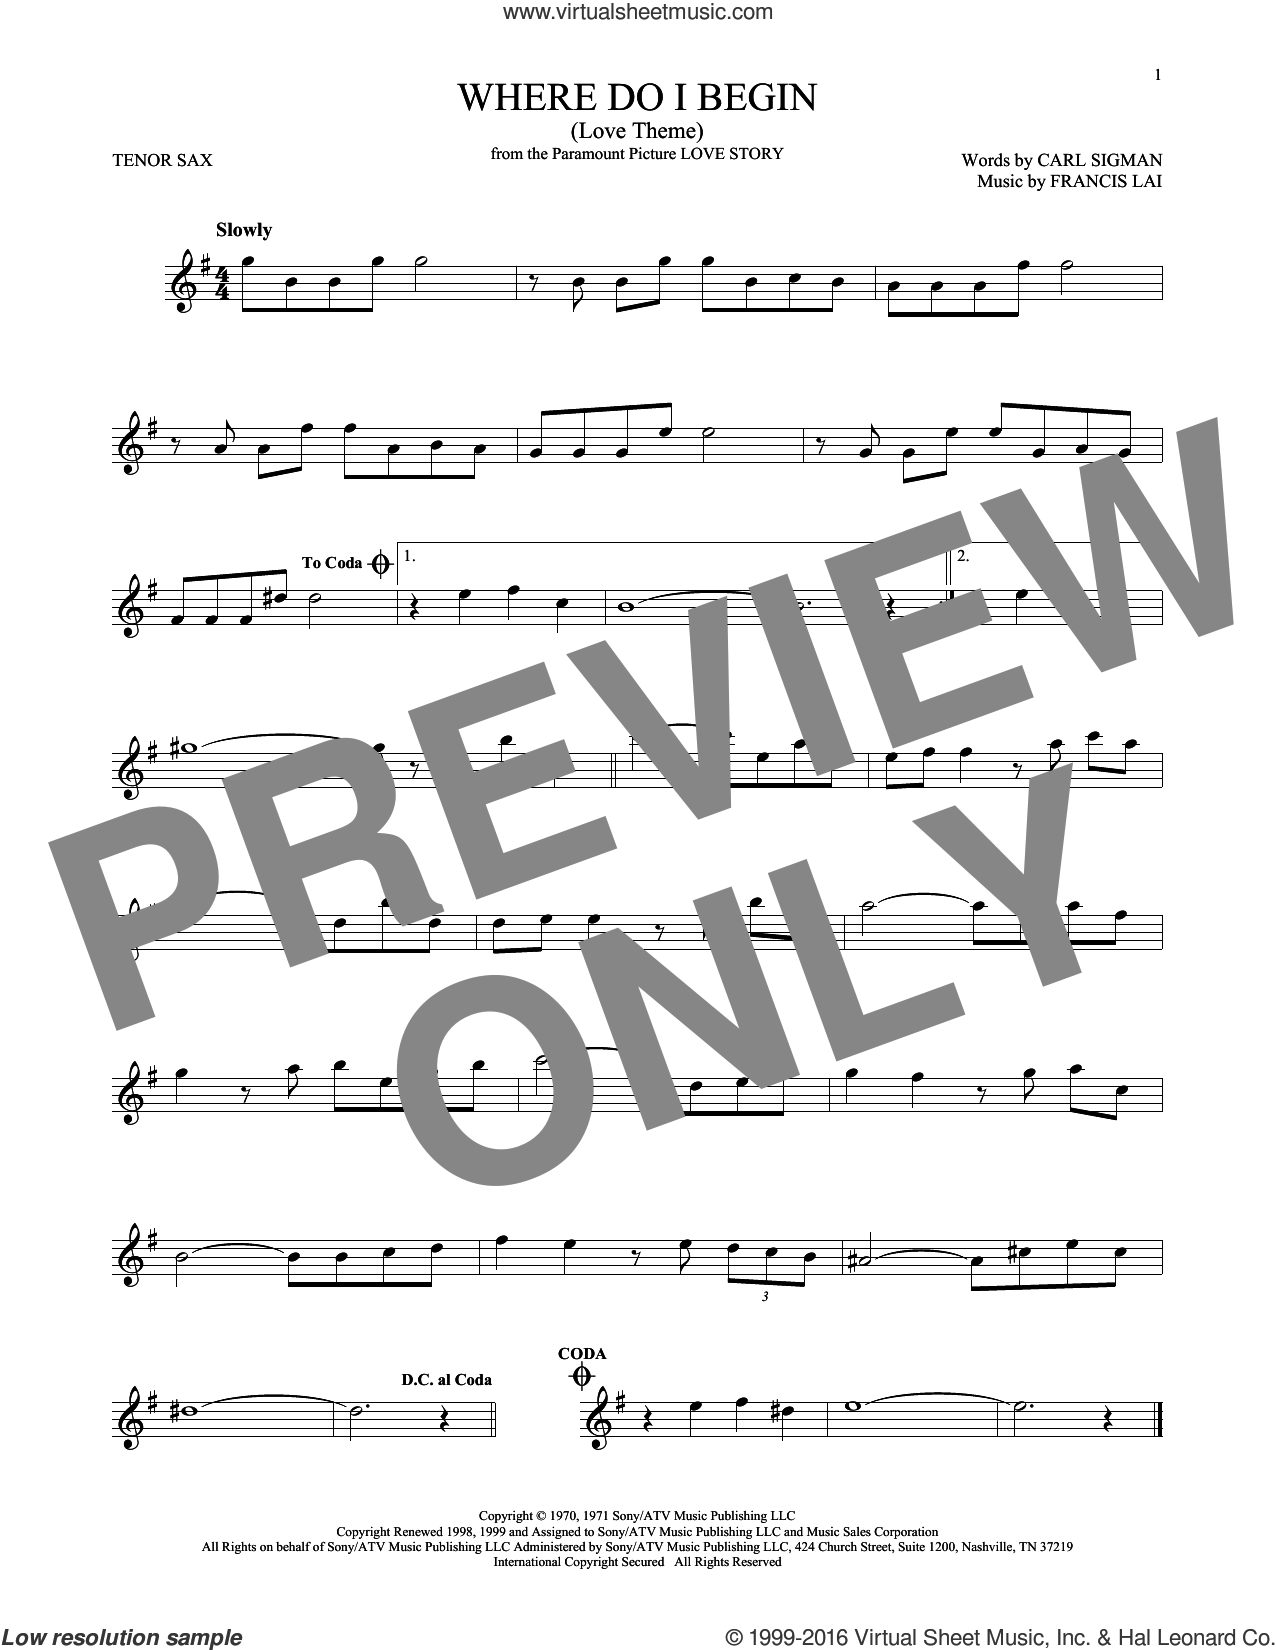 Where Do I Begin (Love Theme) sheet music for tenor saxophone solo ( Sax) by Francis Lai, Andy Williams and Carl Sigman. Score Image Preview.